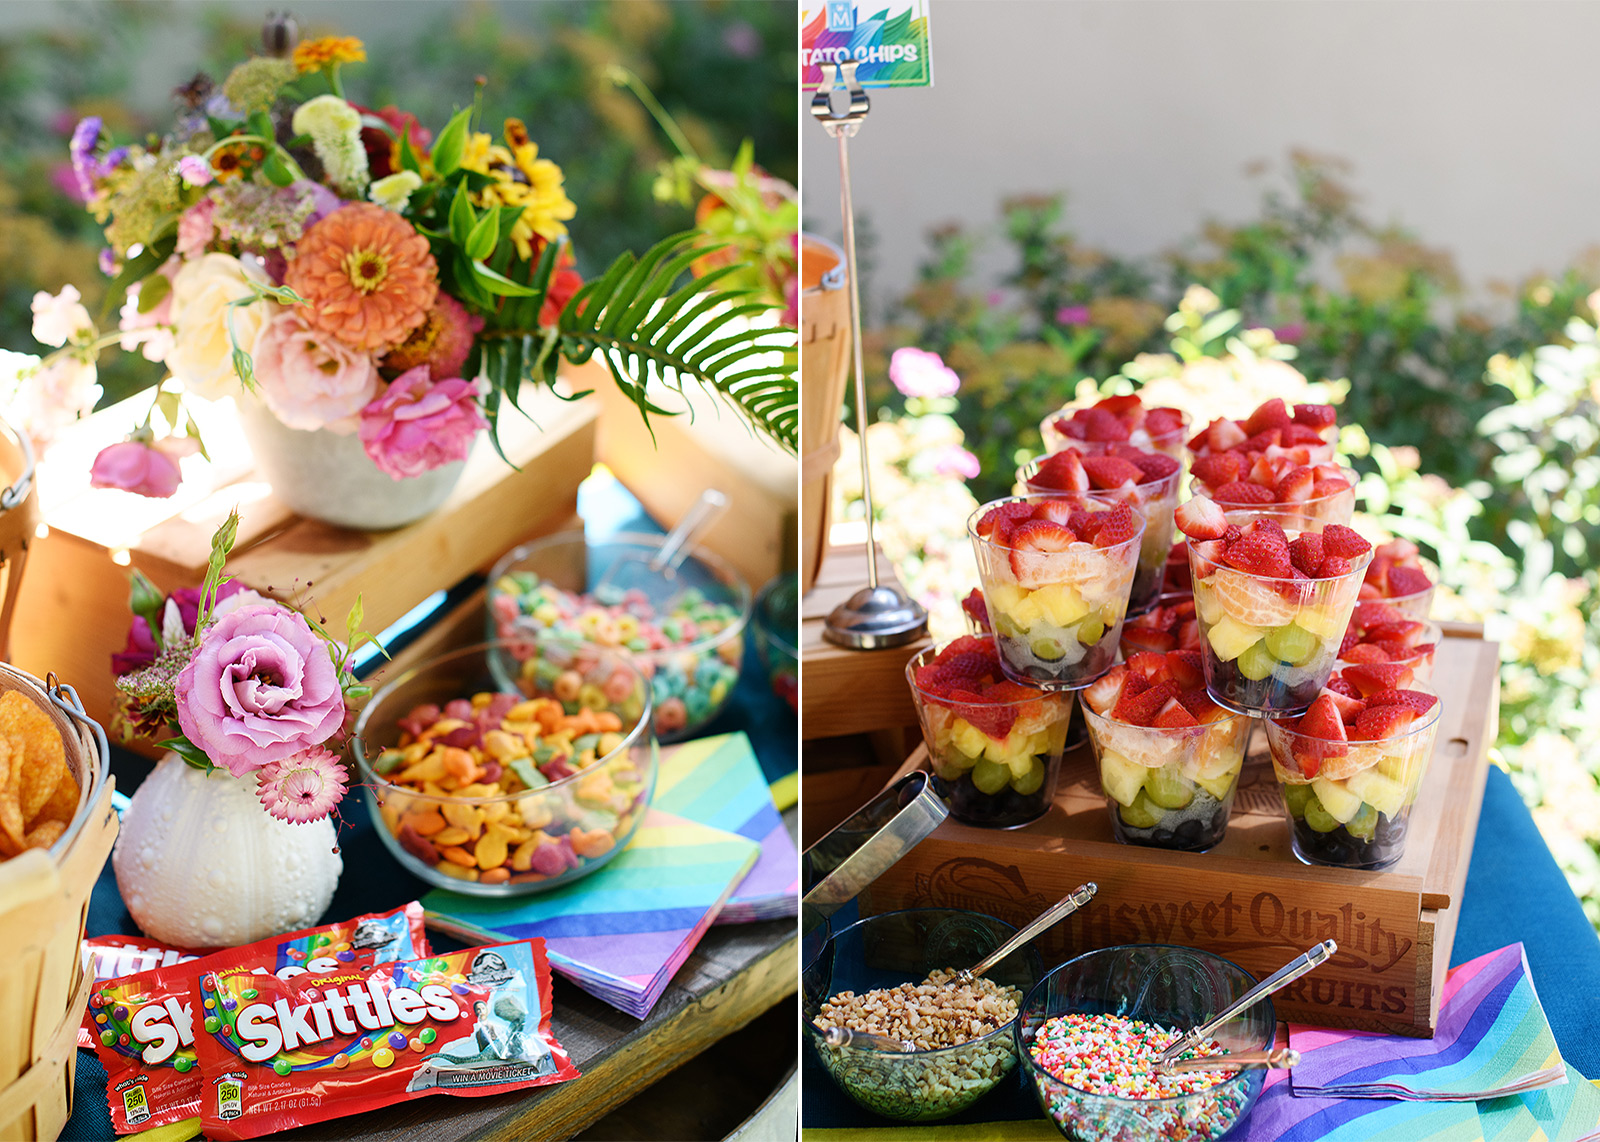 First birthday party rainbow food spread with skittles, goldfish, sprinkles, fruits, cereal